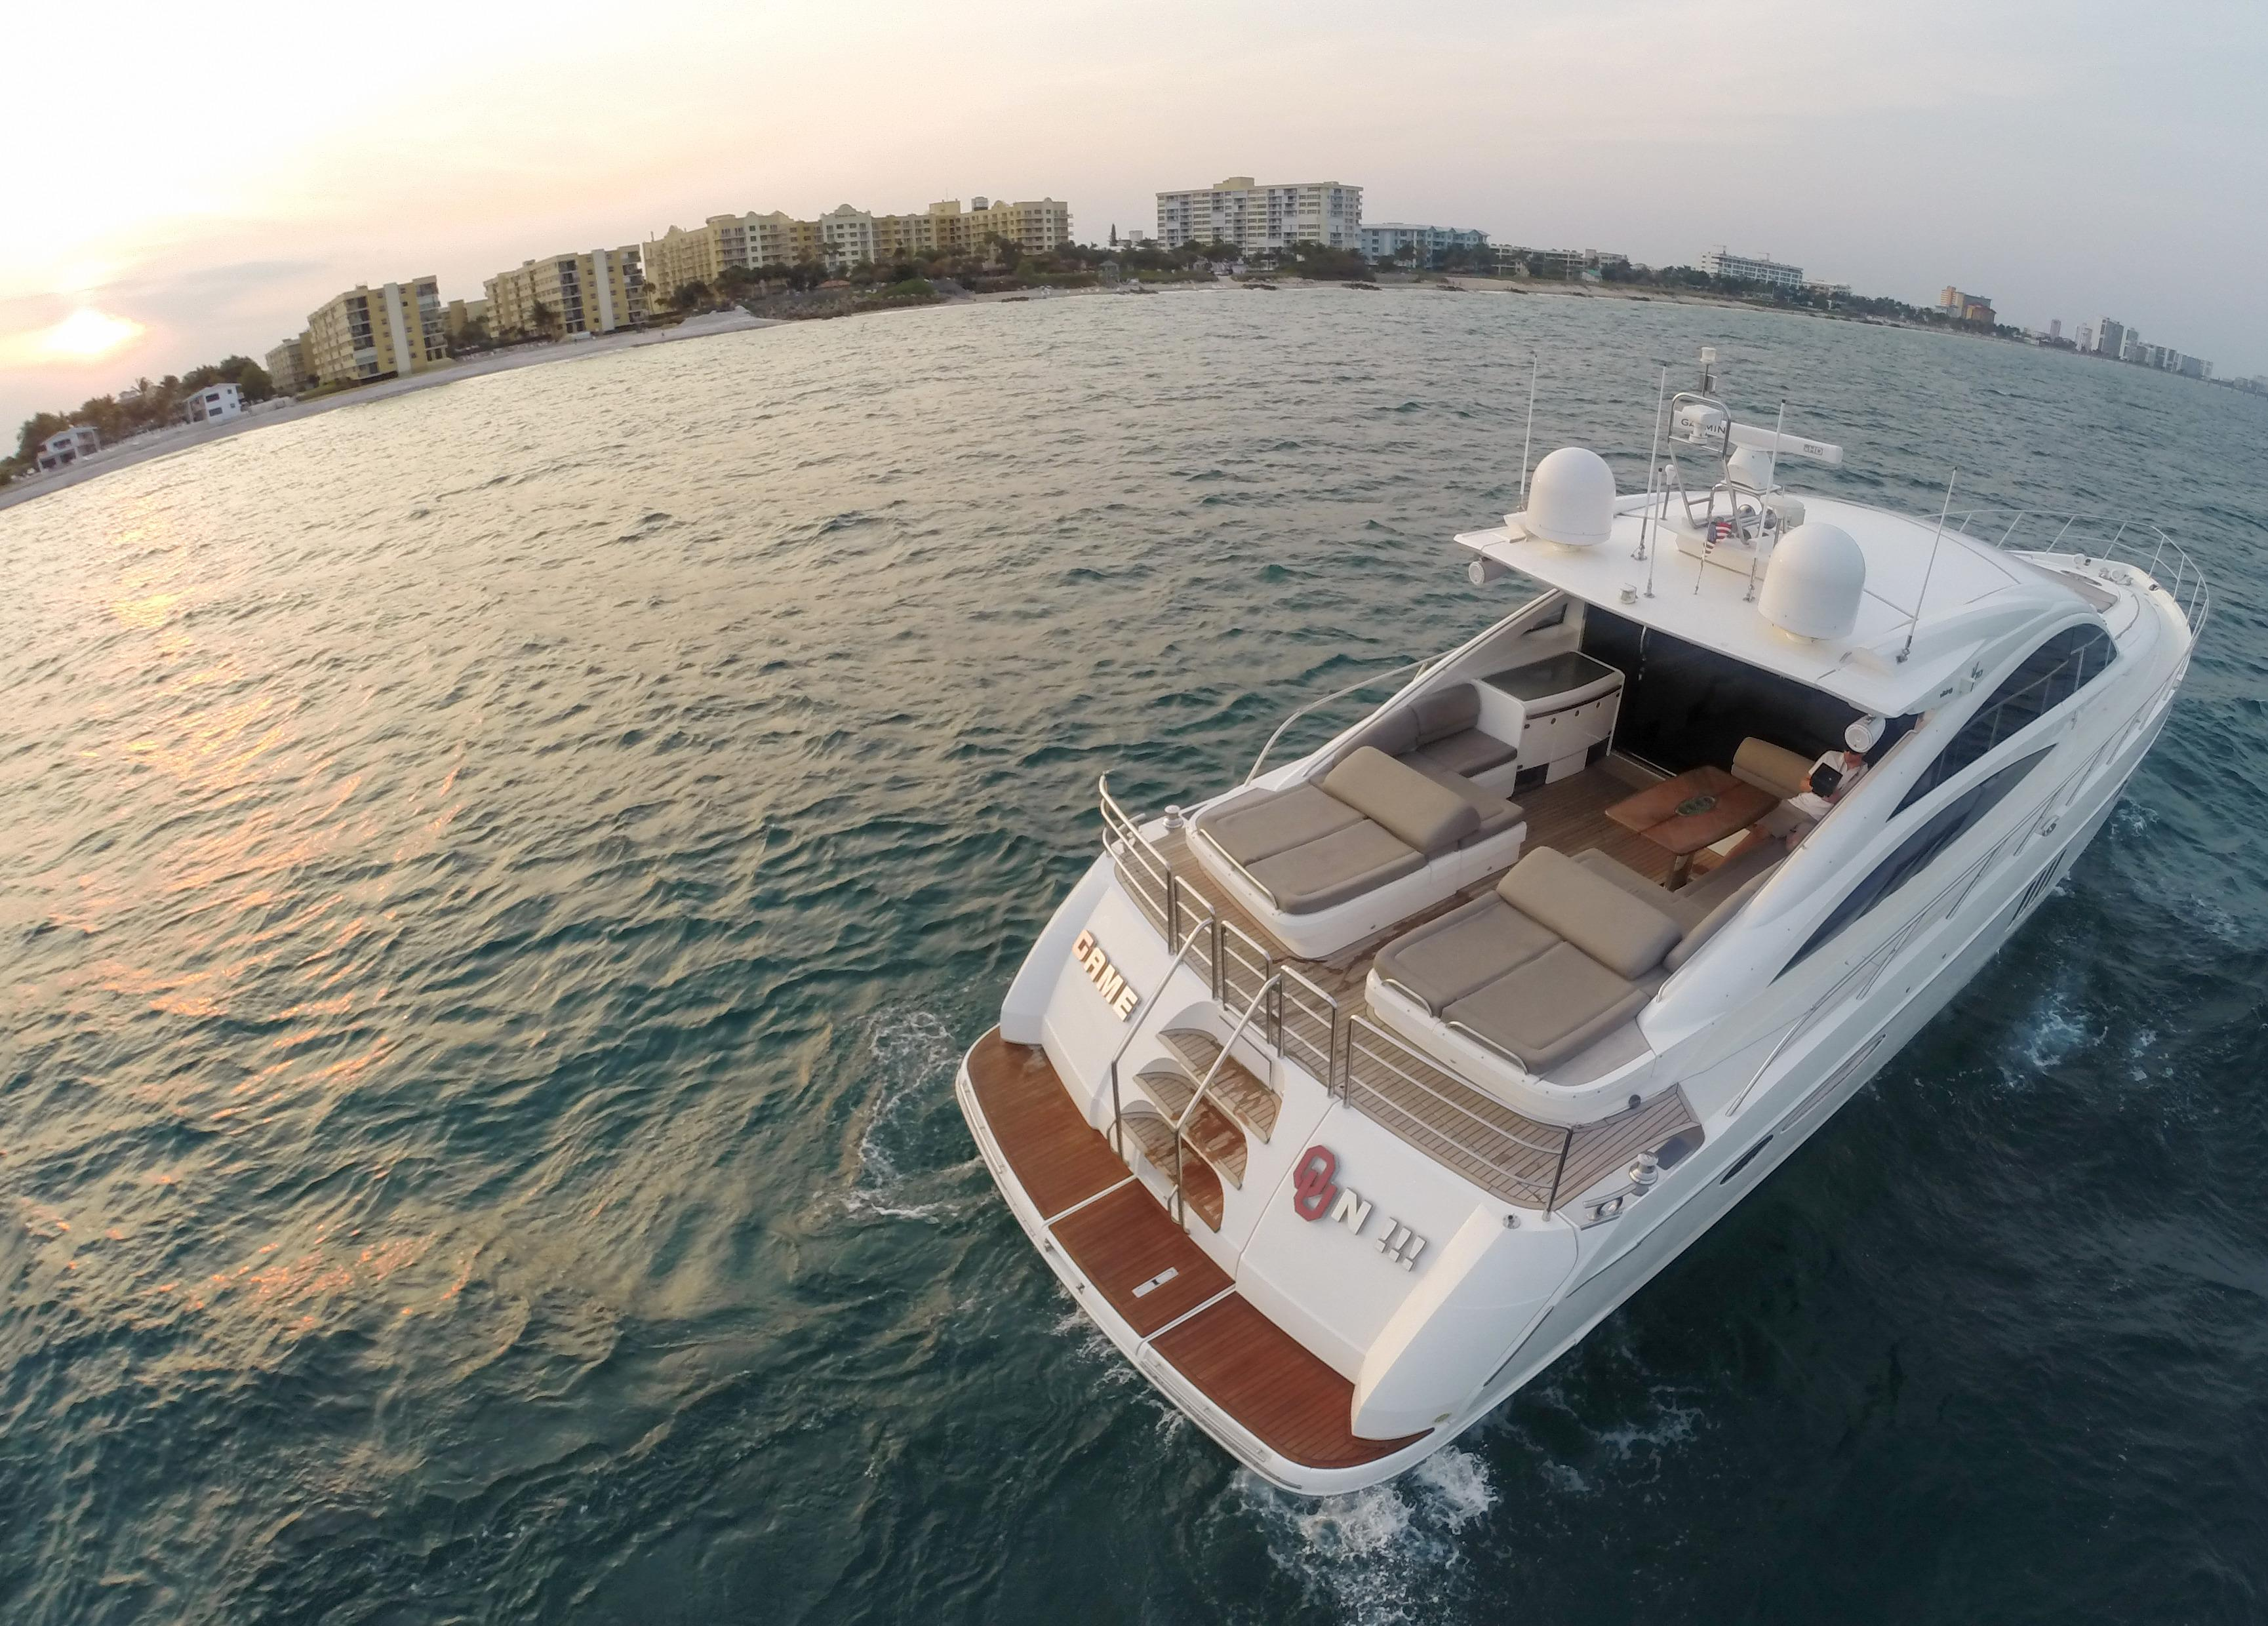 70 viking princess yacht express 2006 game on for sale in pompano beach  florida  us